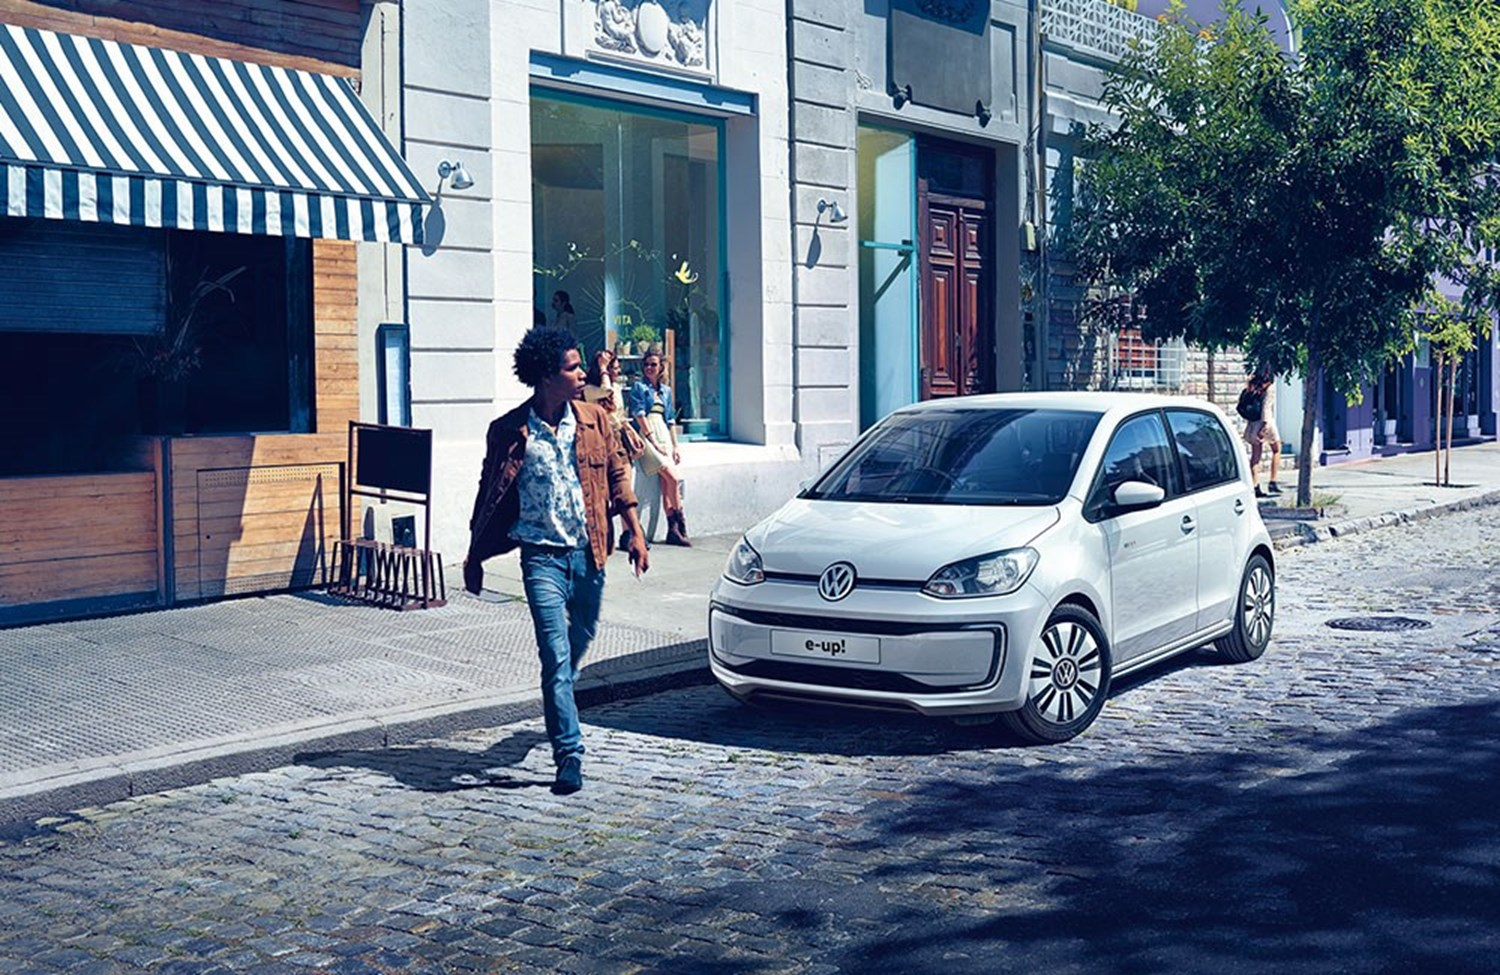 White Volkswagen e-up!